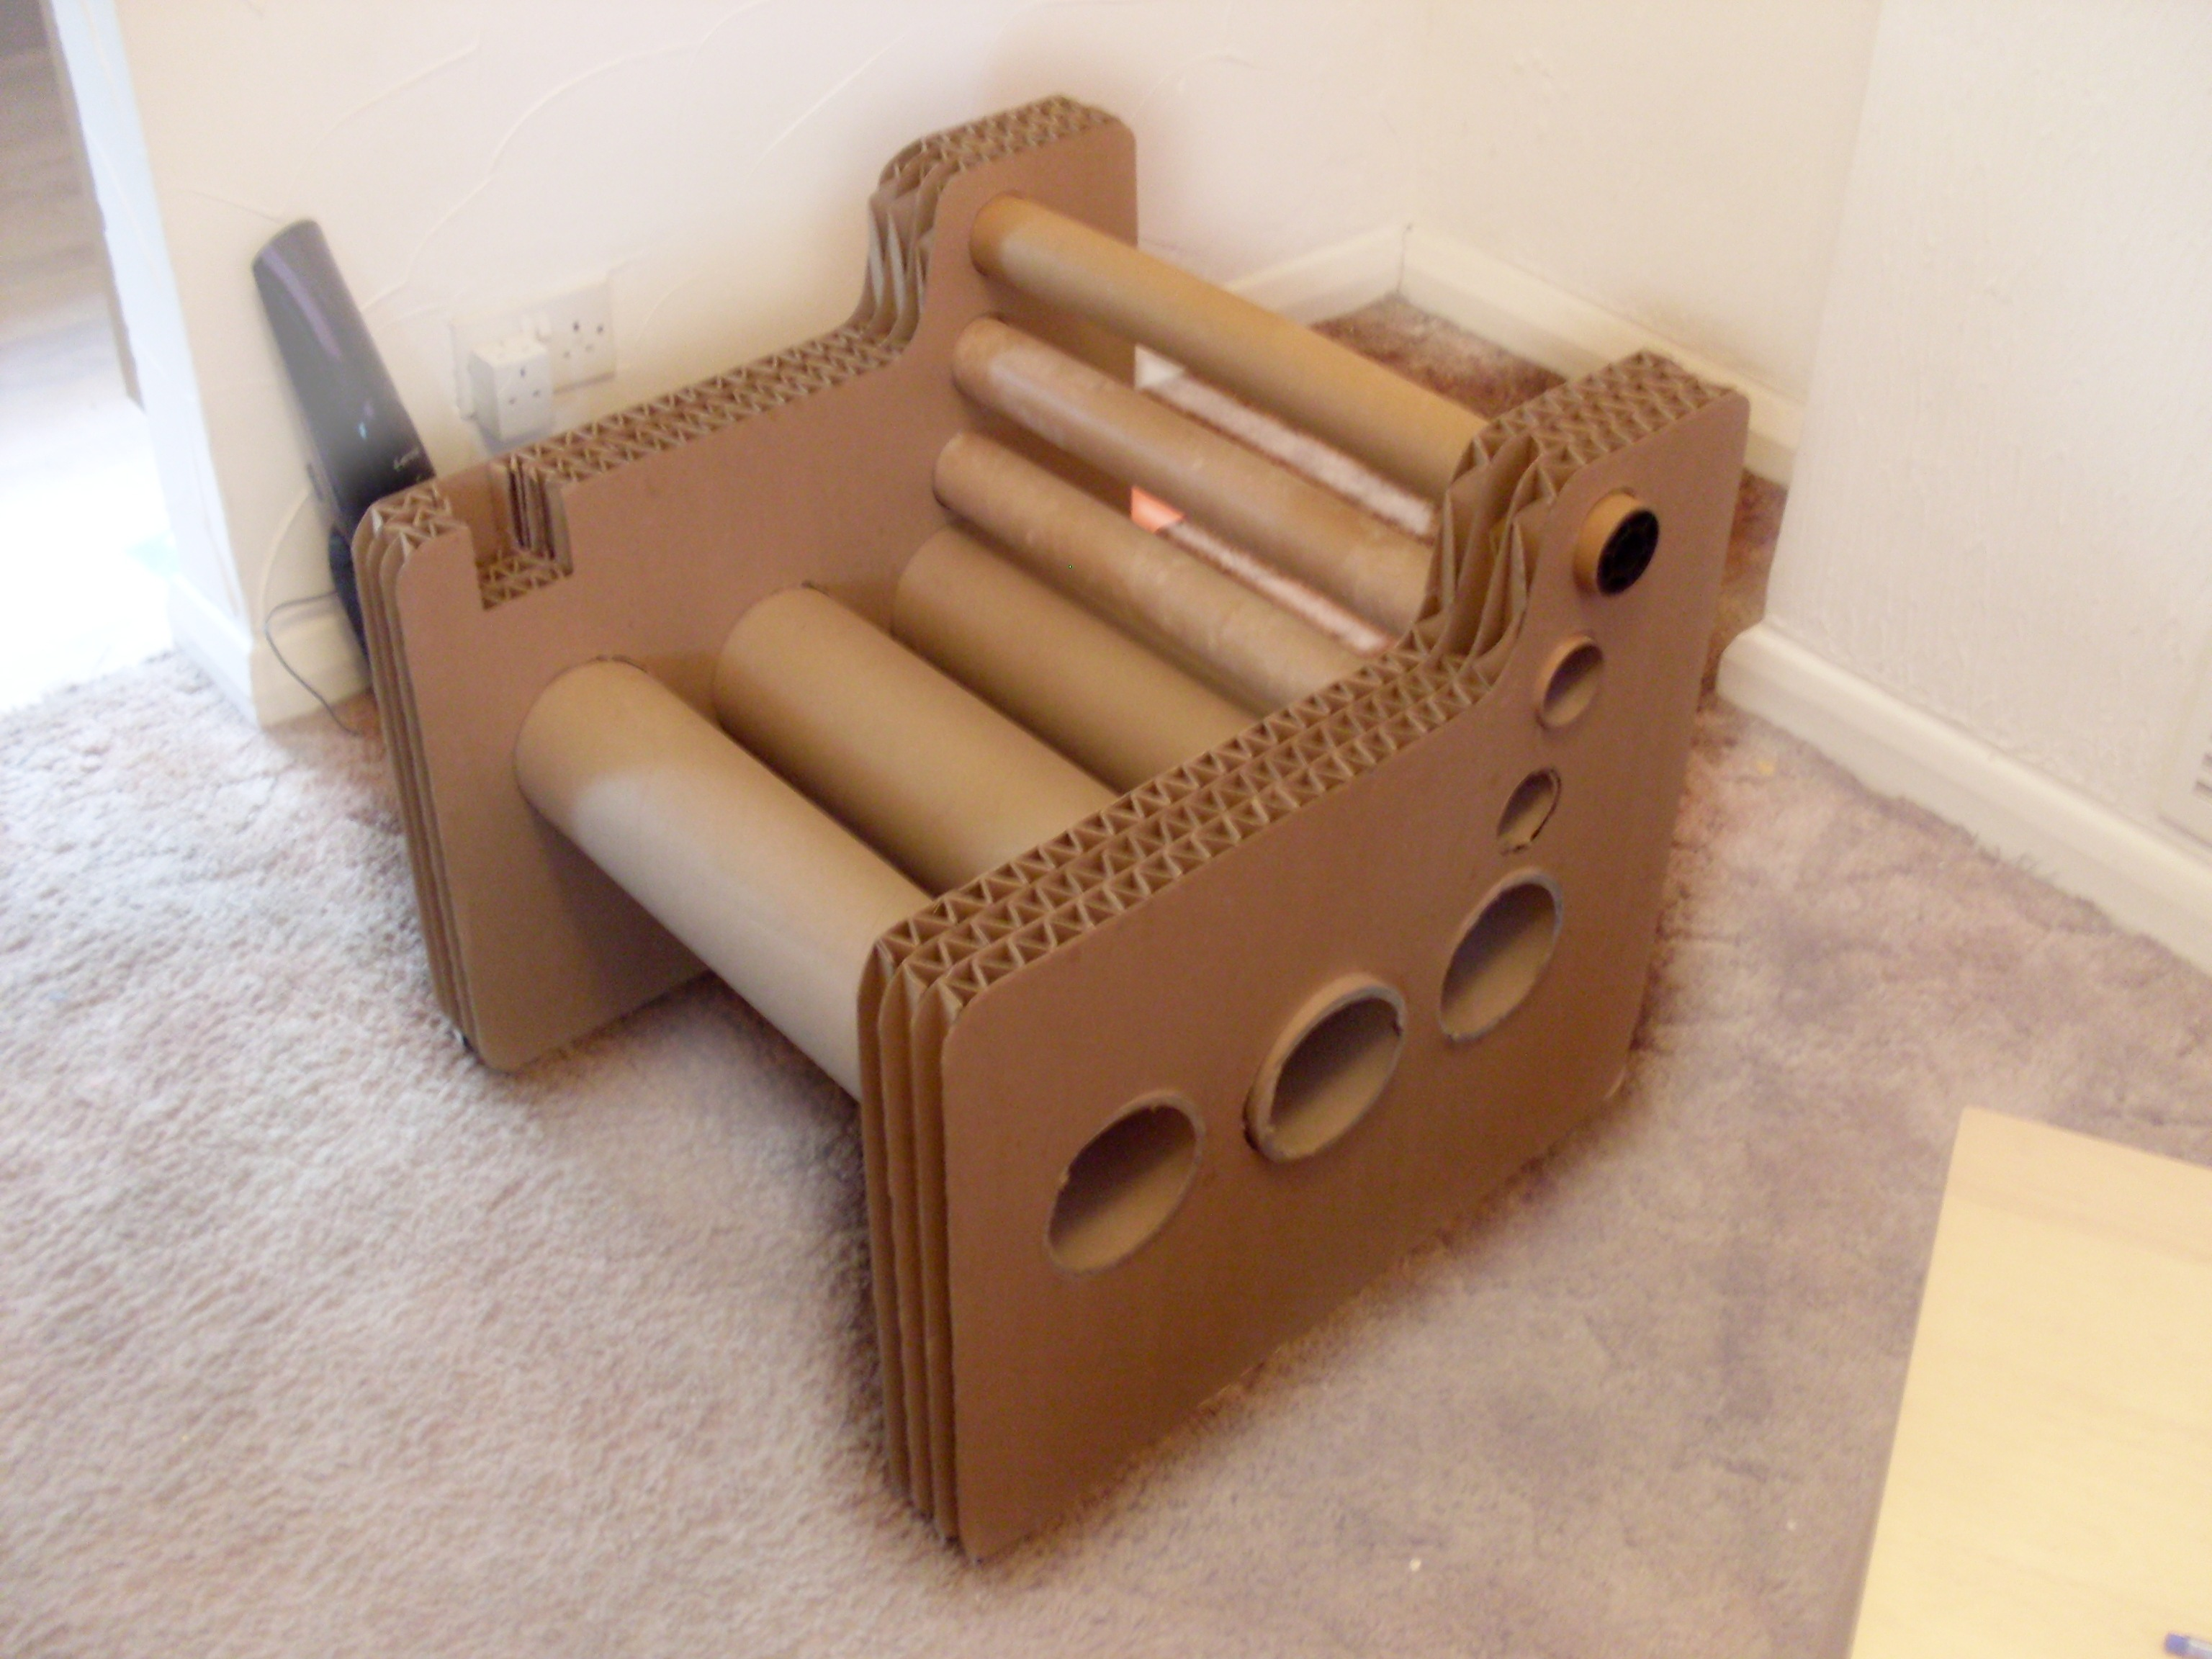 Comfortable cardboard chair designs - Comfortable Cardboard Chair Designs 3